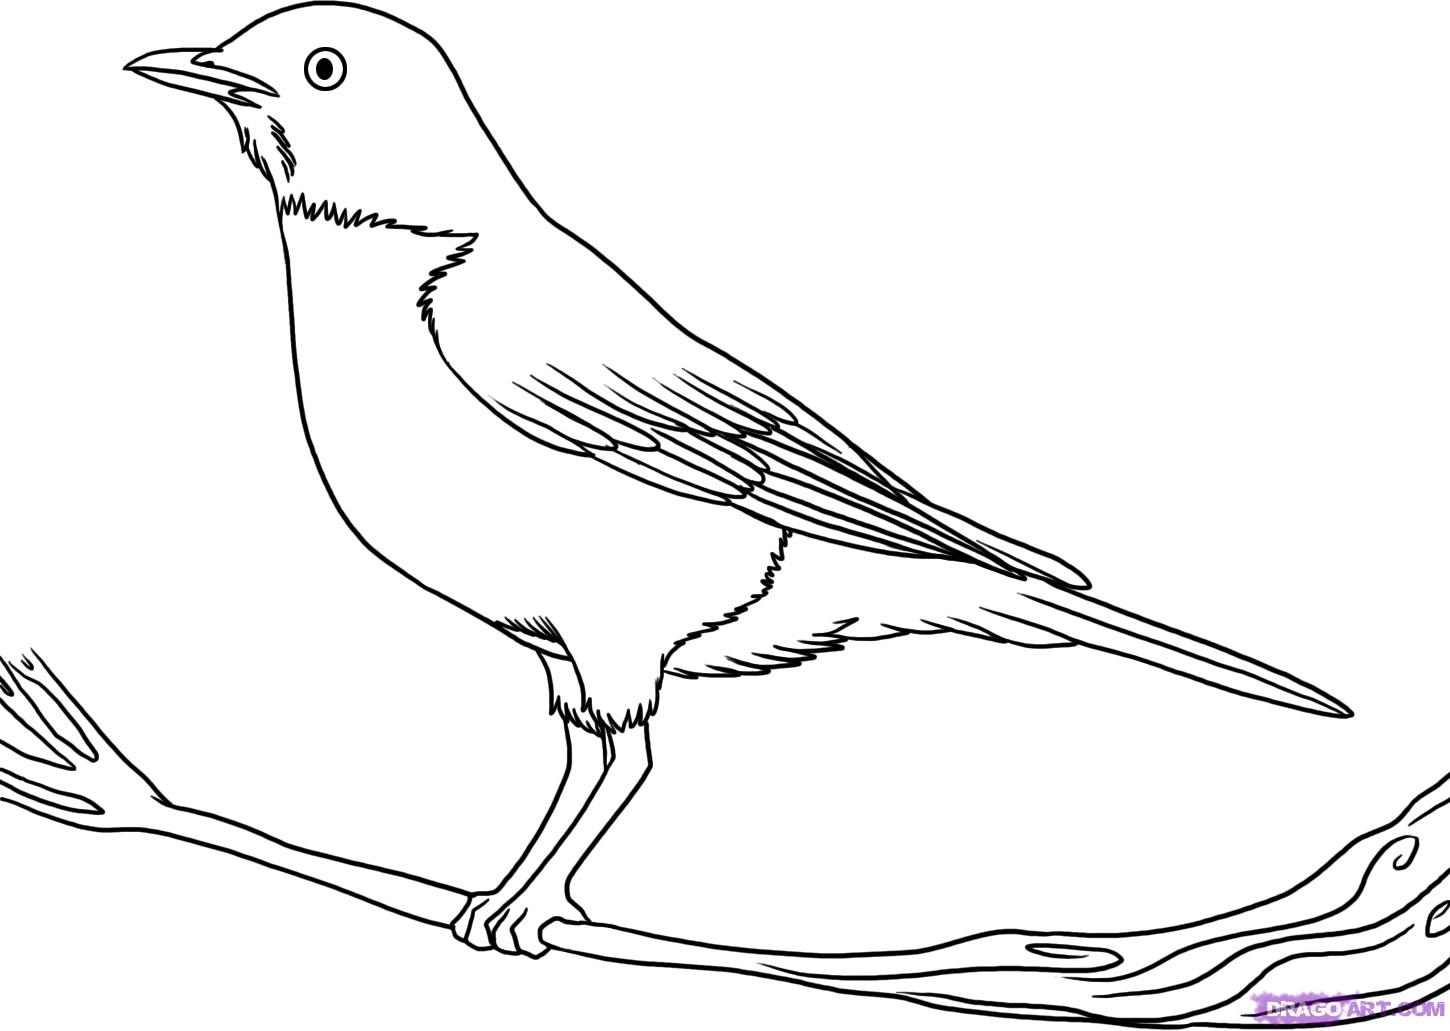 1450x1031 Outline Drawing Of A Bird